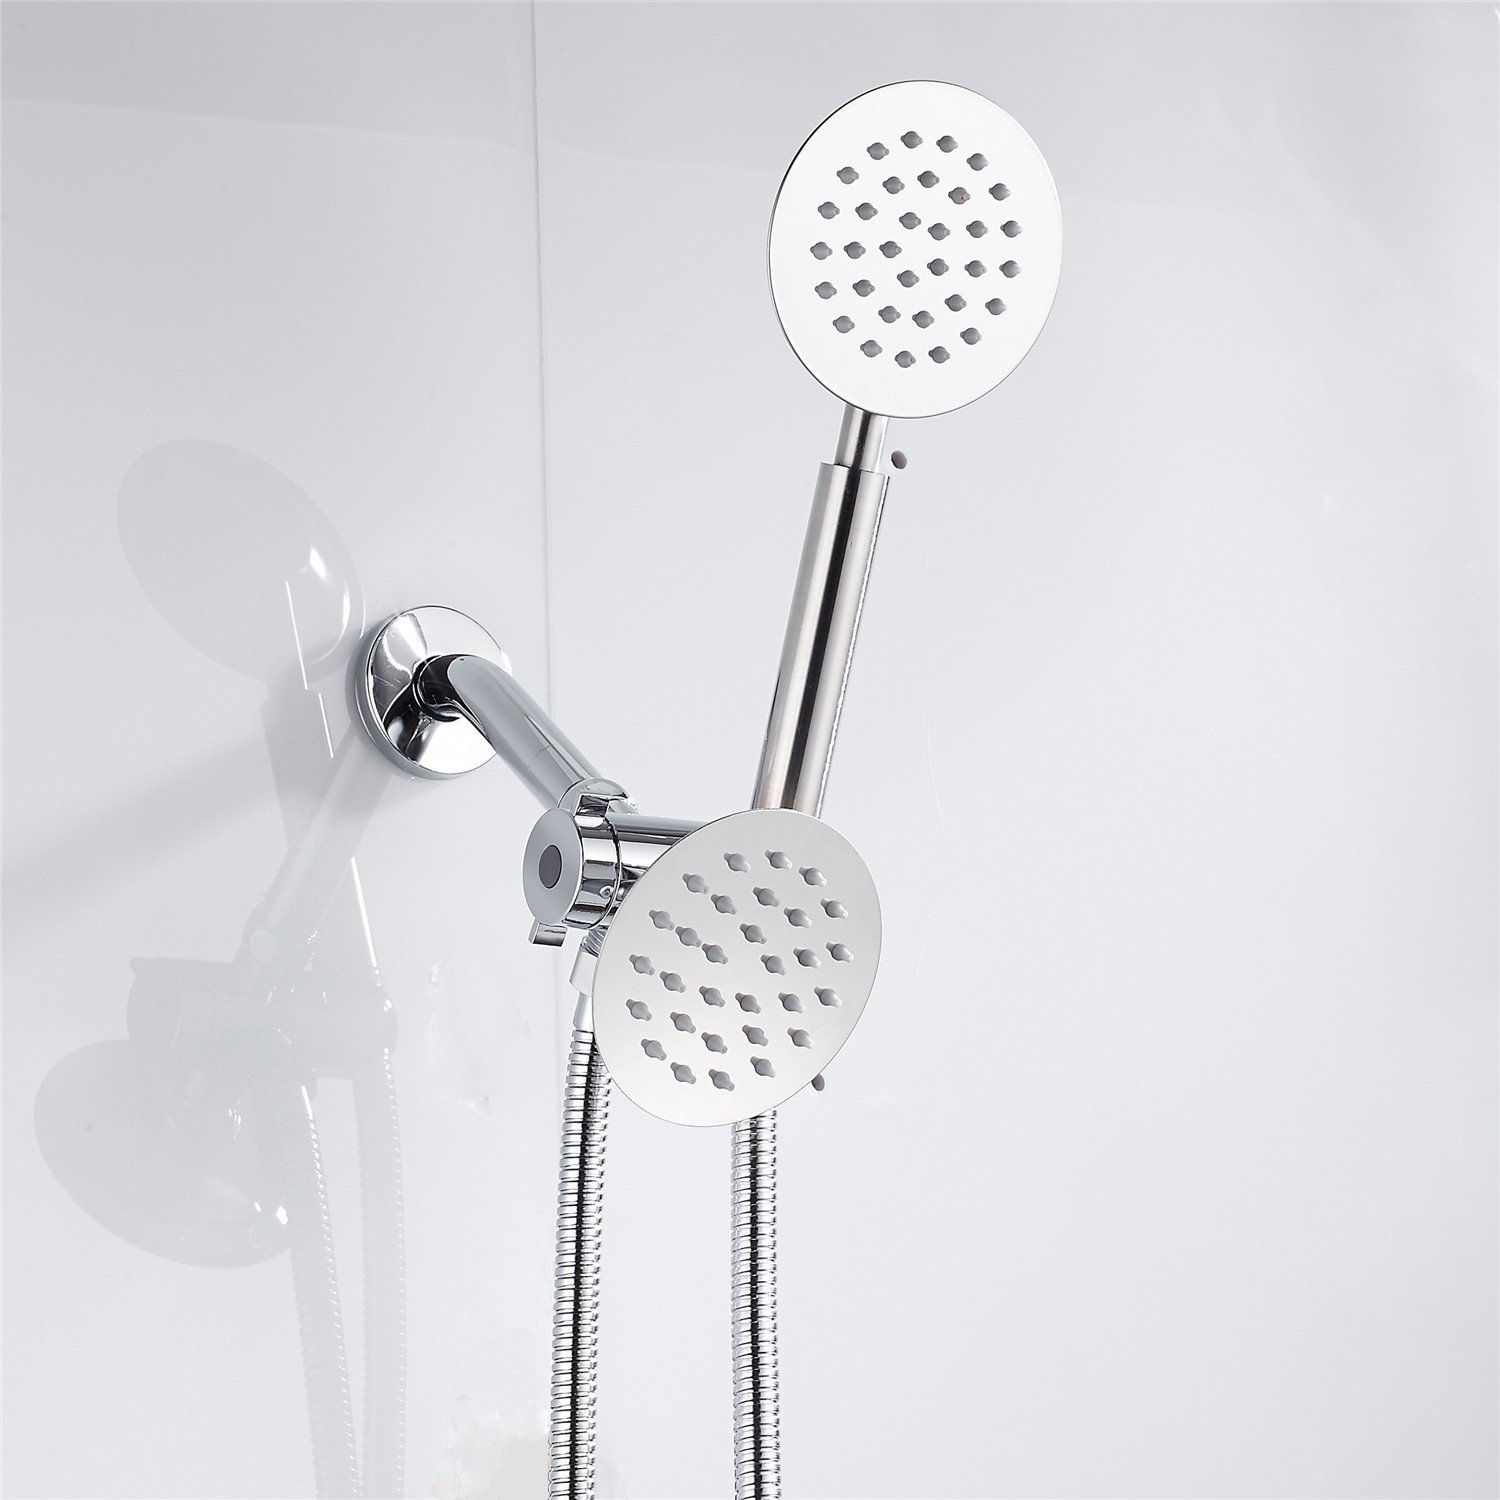 SOQO Universal Bath shower head Stainless Steel 4 Inch Top Spray High Flow Water Showerhead Chrome